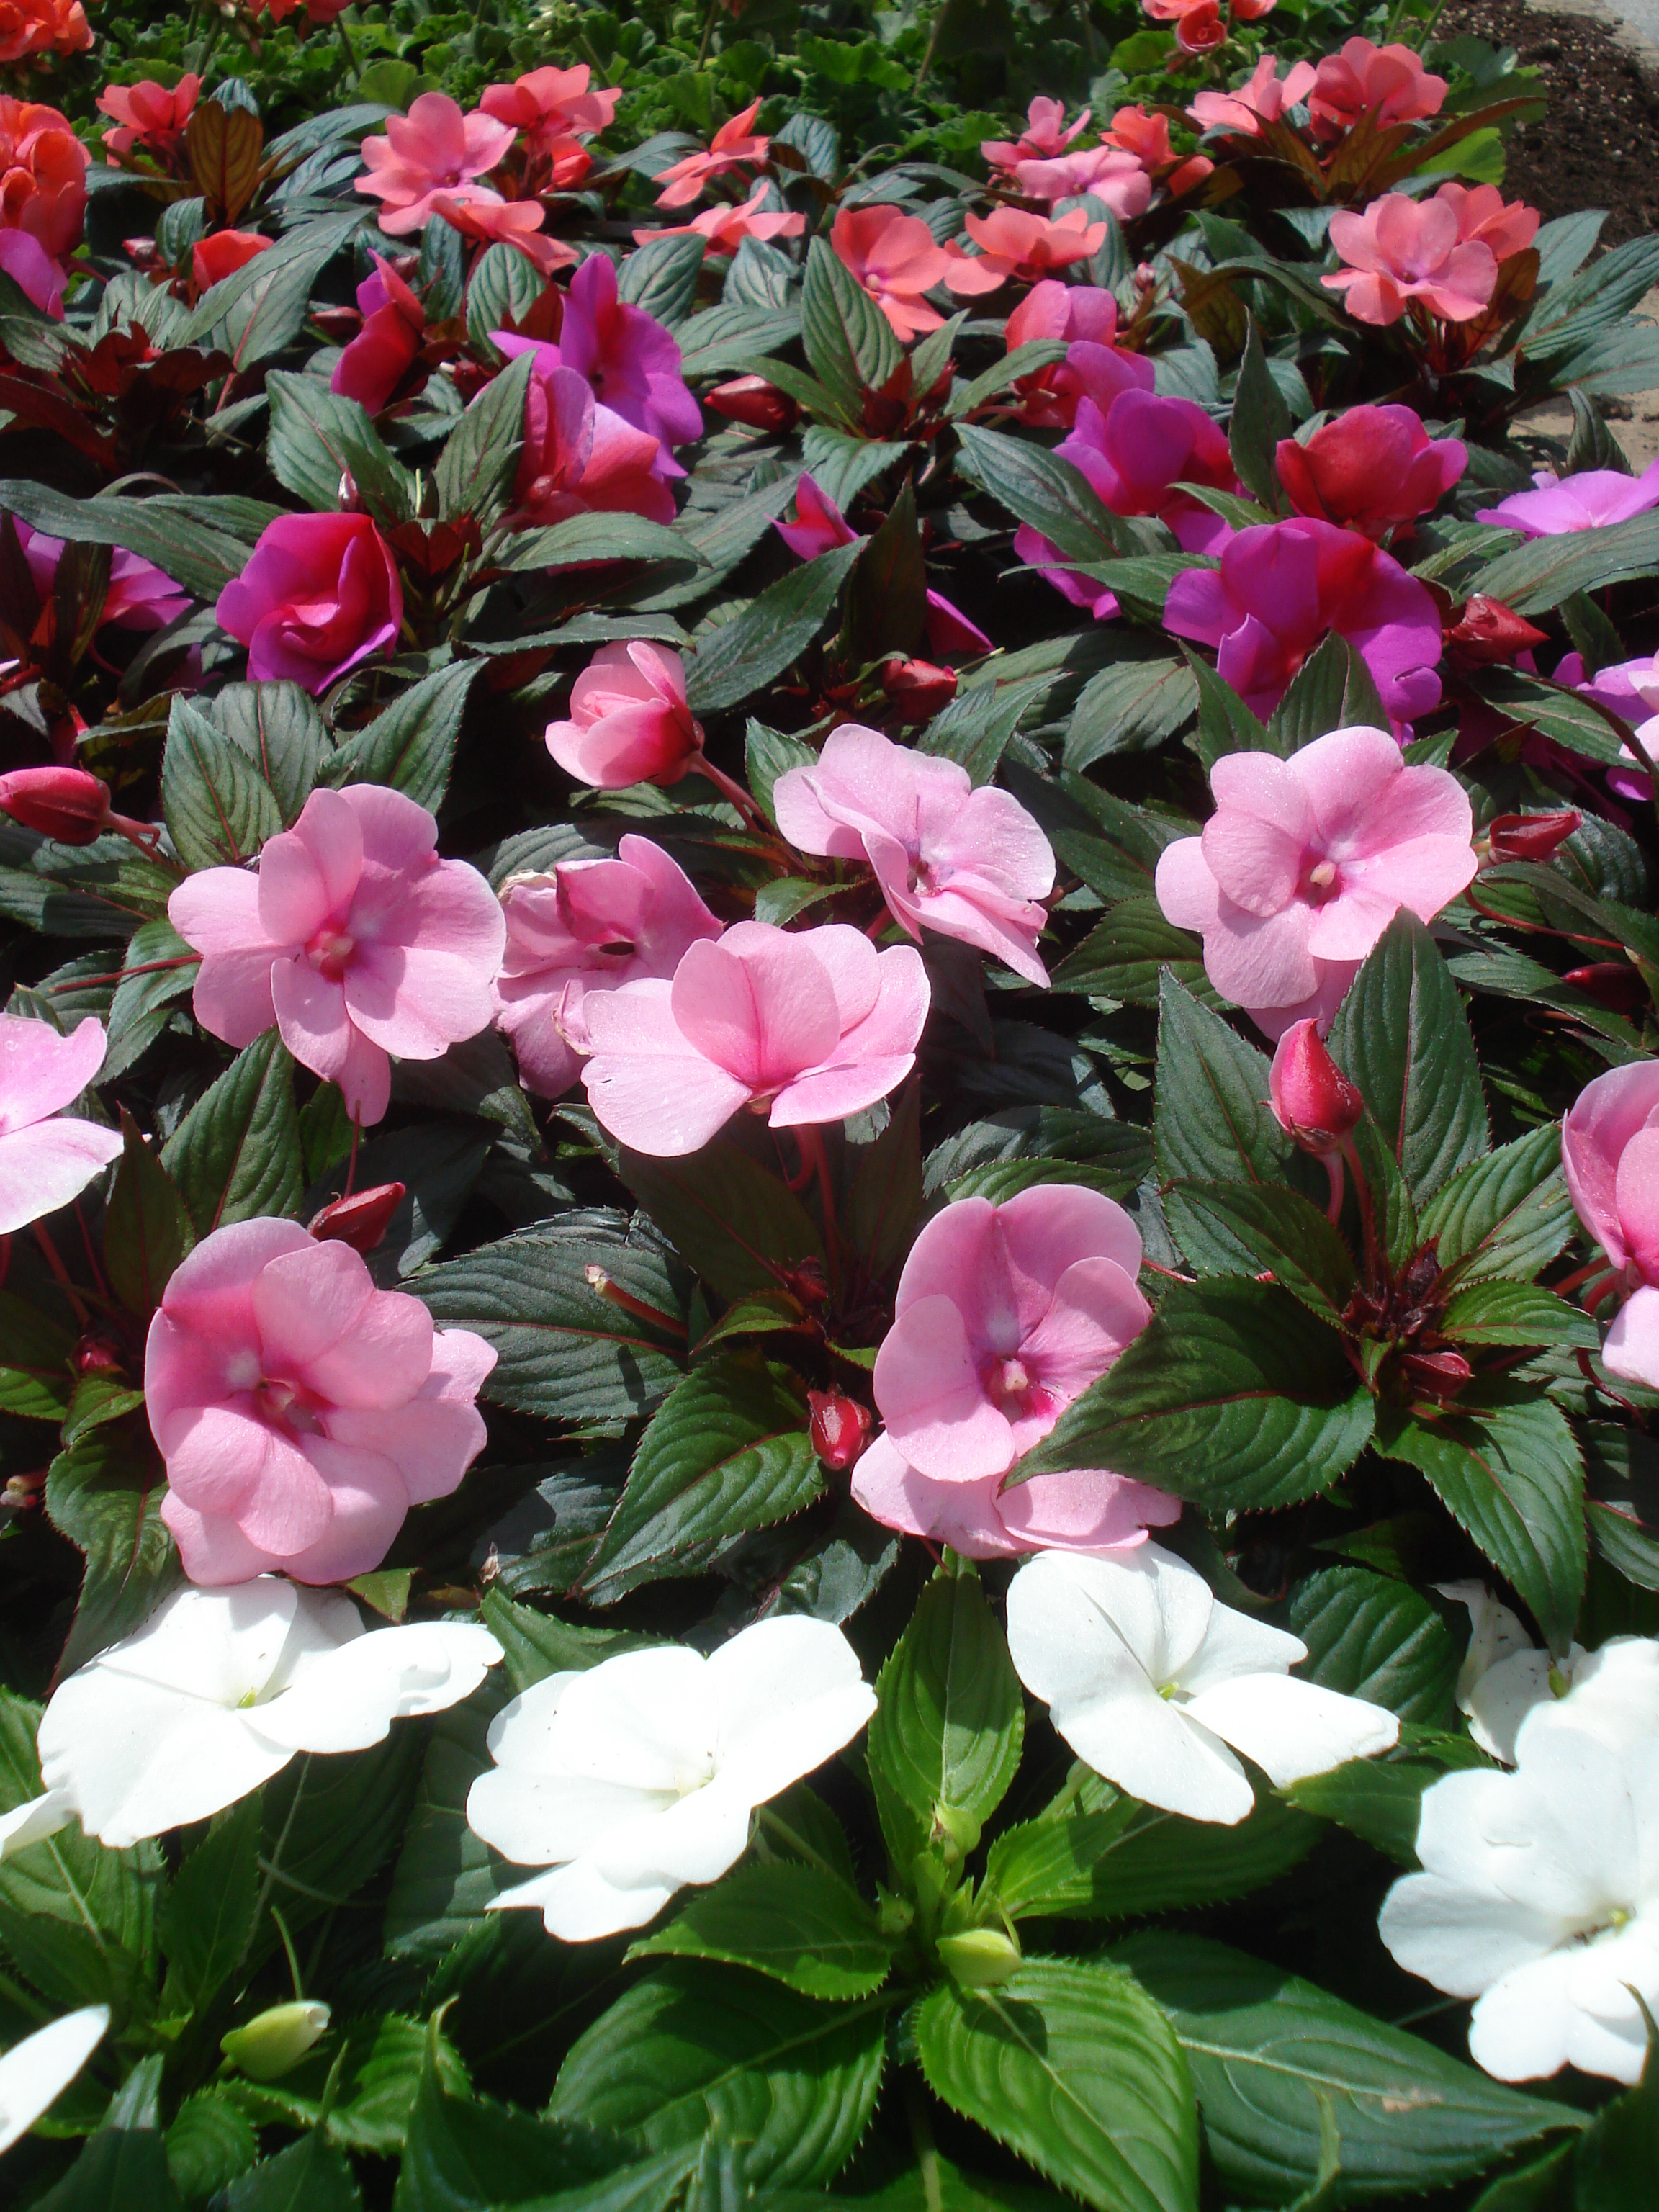 New Guine Impatiens.JPG